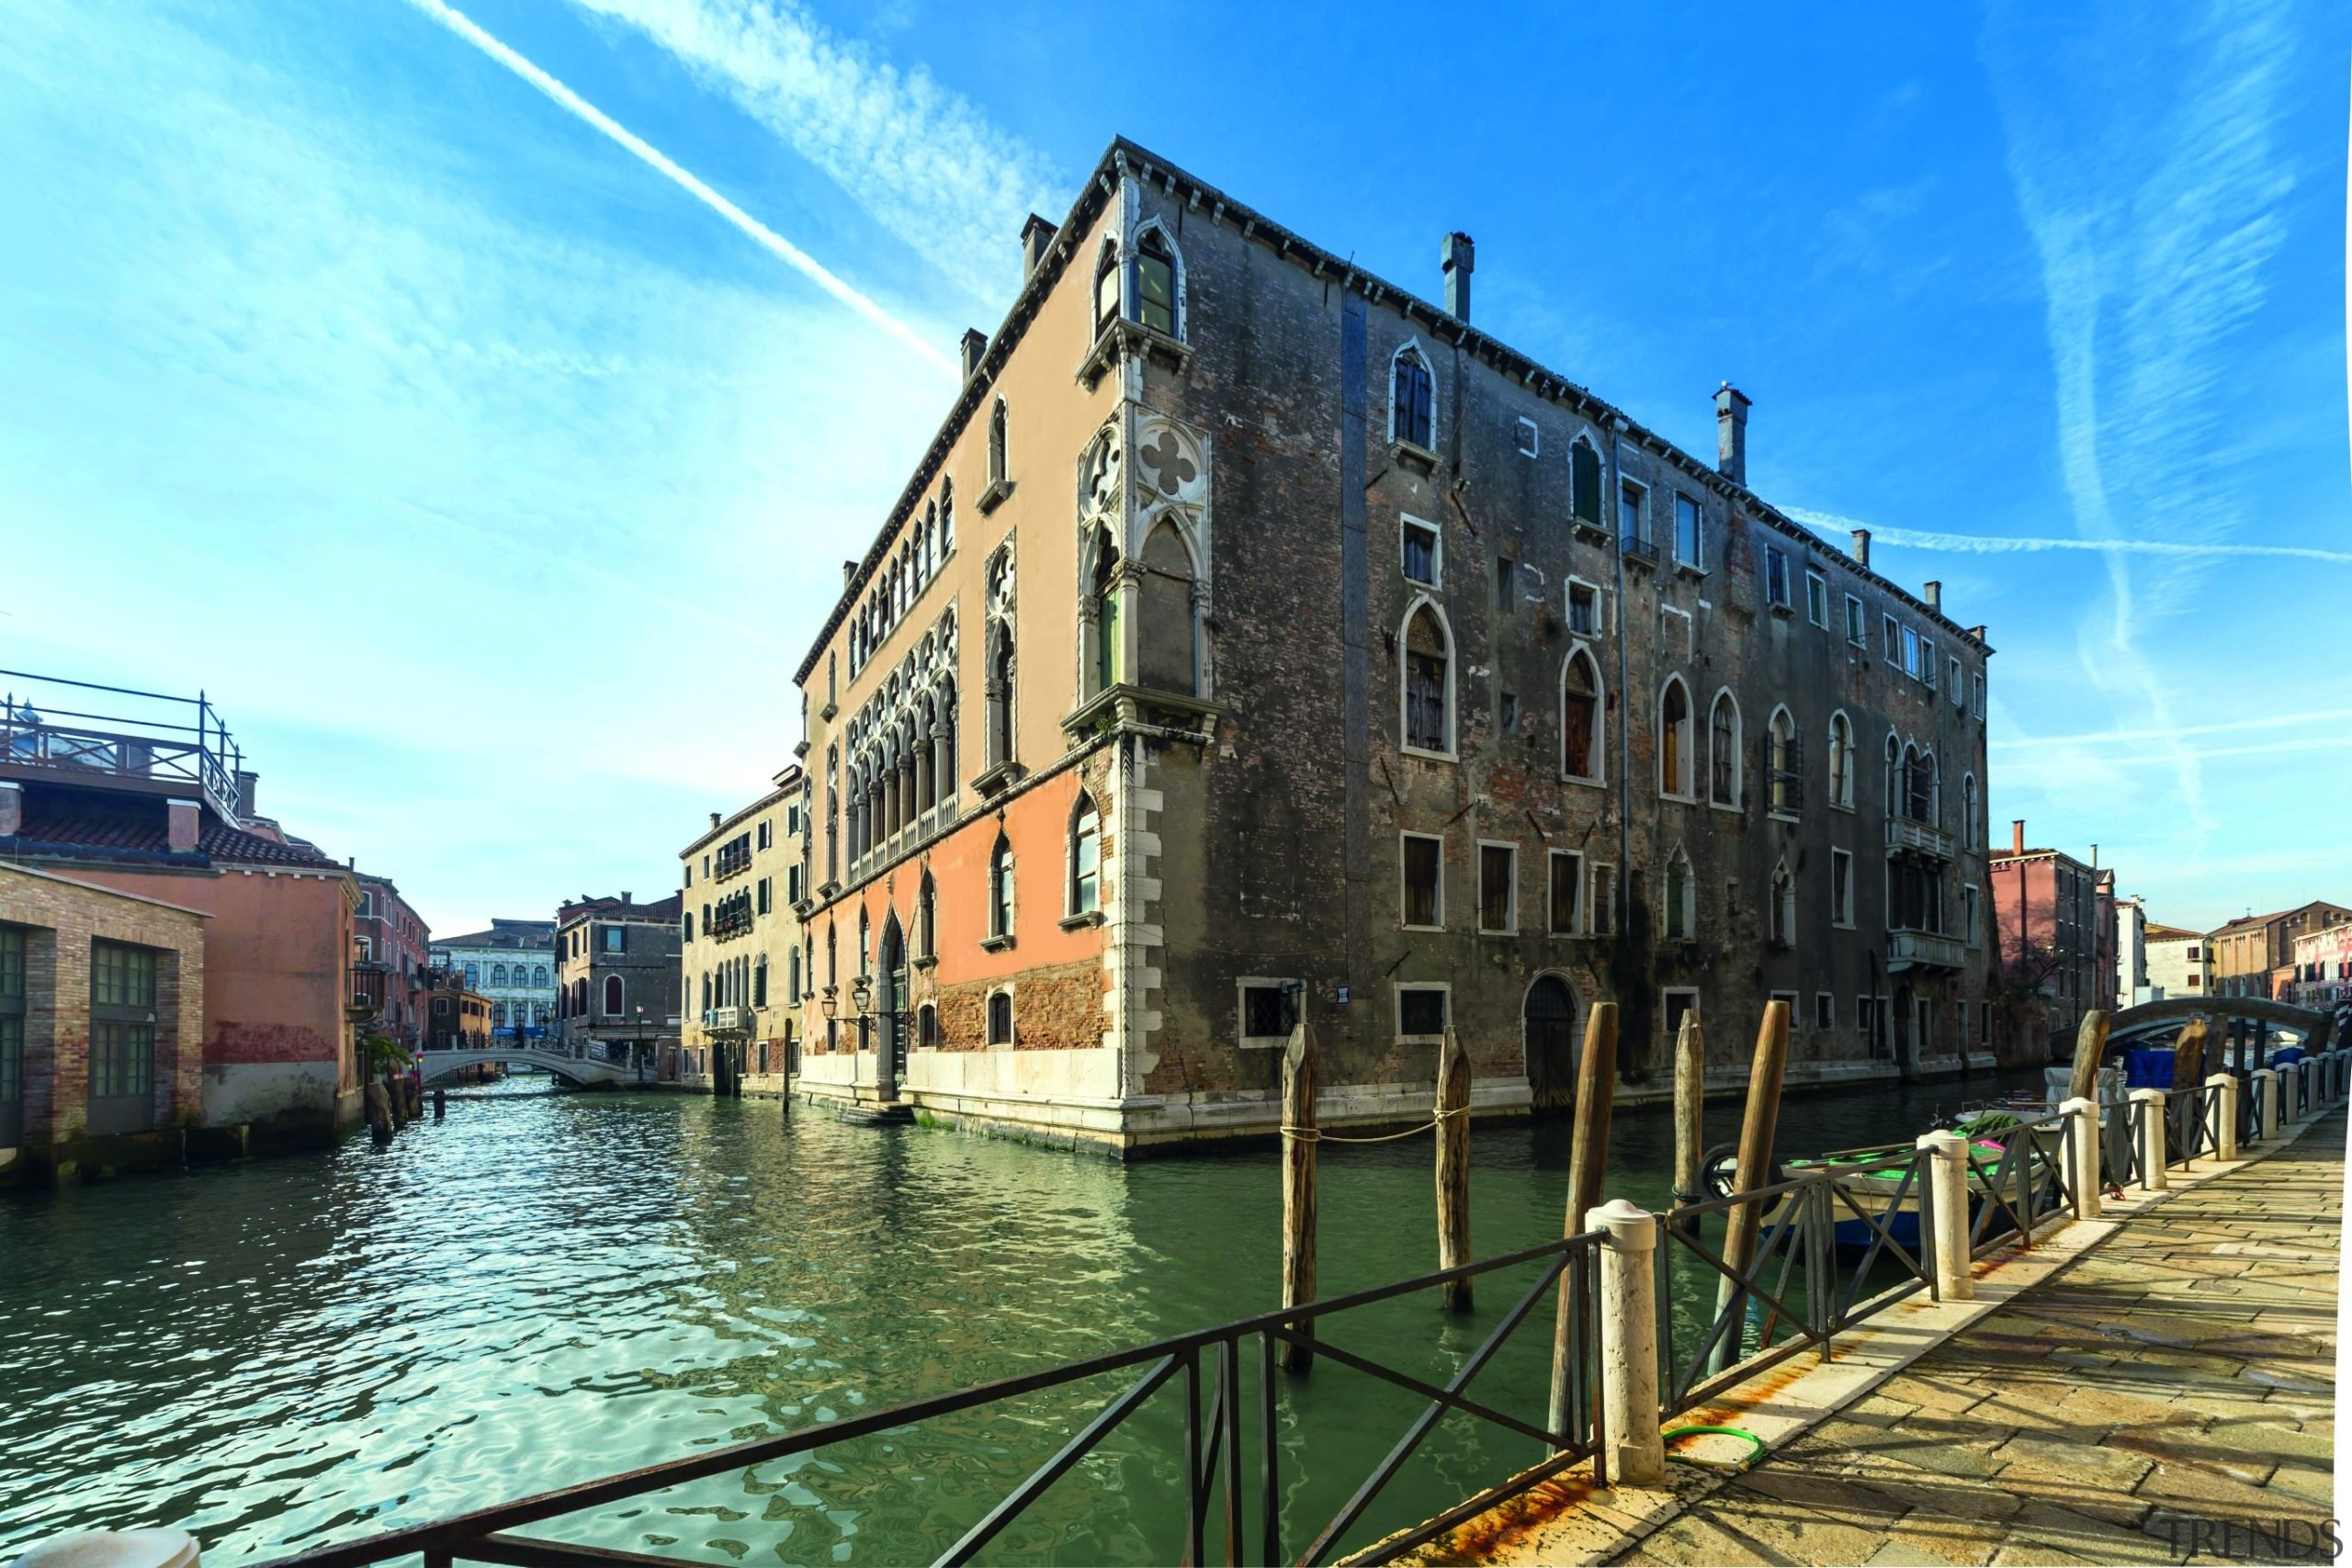 This building is perfectly suited to a conversion building, canal, channel, sky, water transportation, waterway, teal